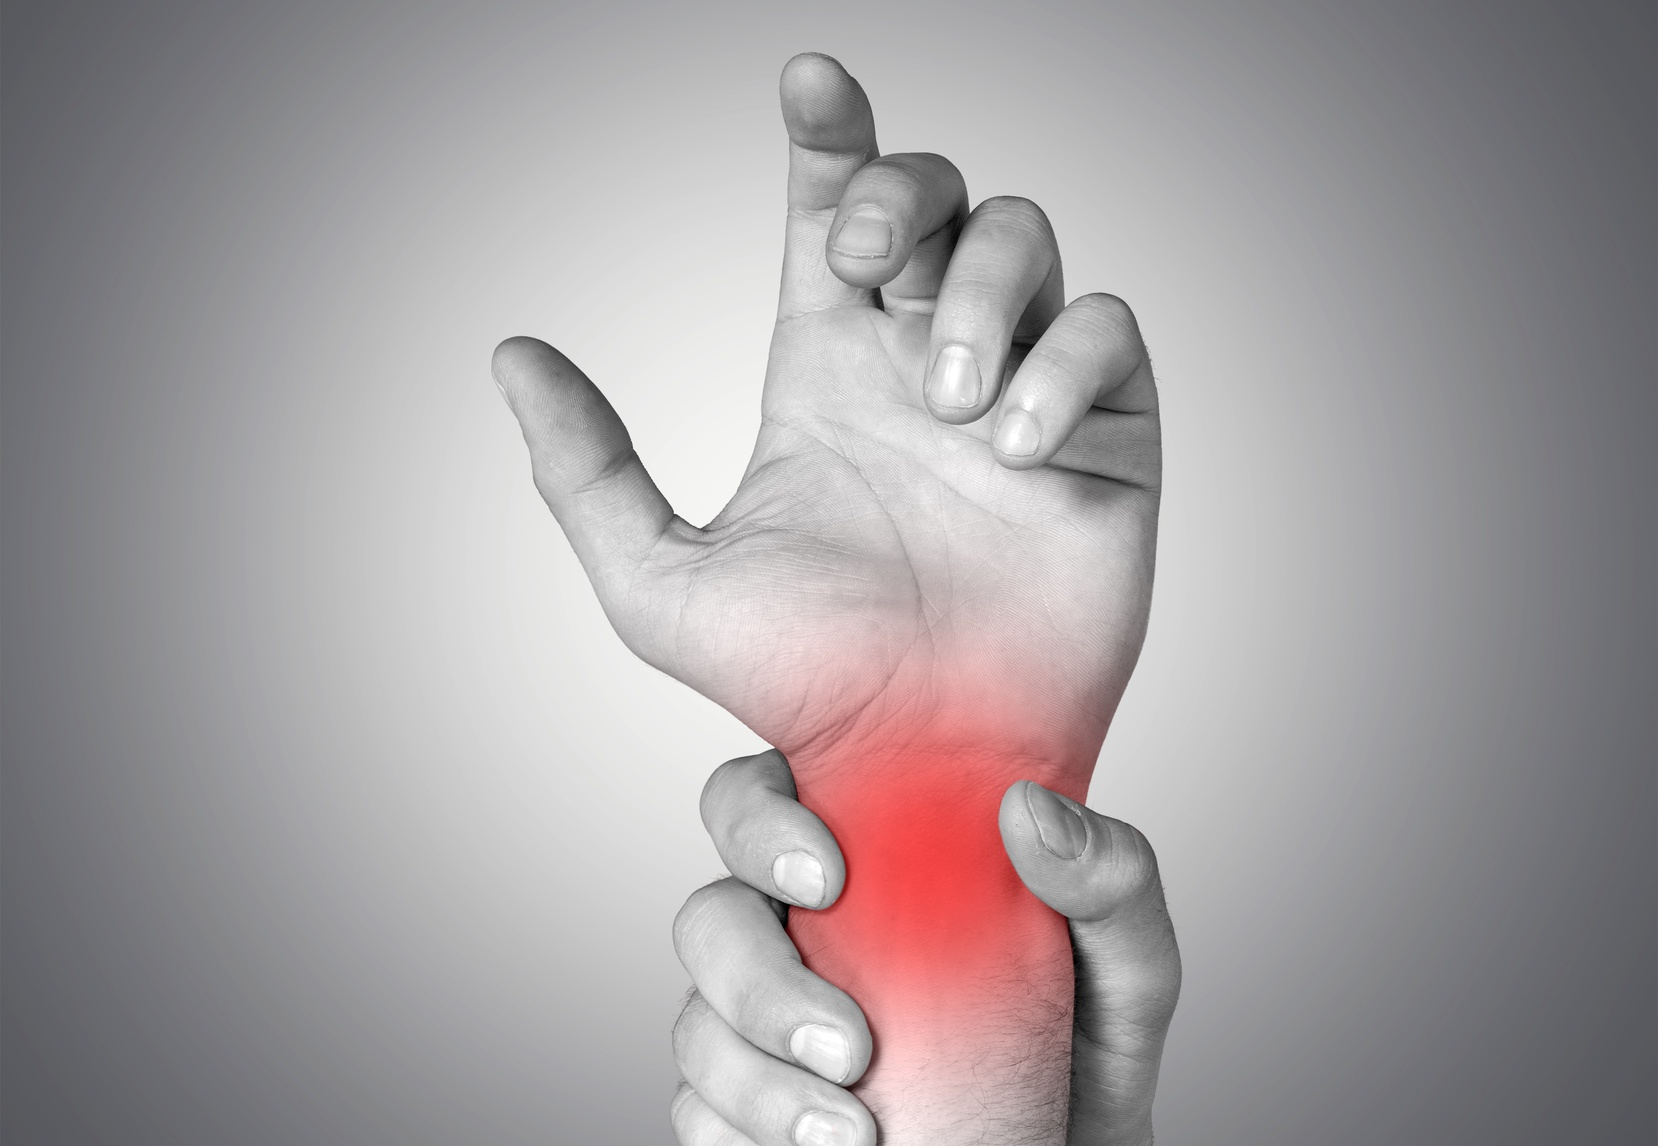 WRIST INJURY CARPAL TUNNEL REHABILITATION IN COLUMBA MD.jpg